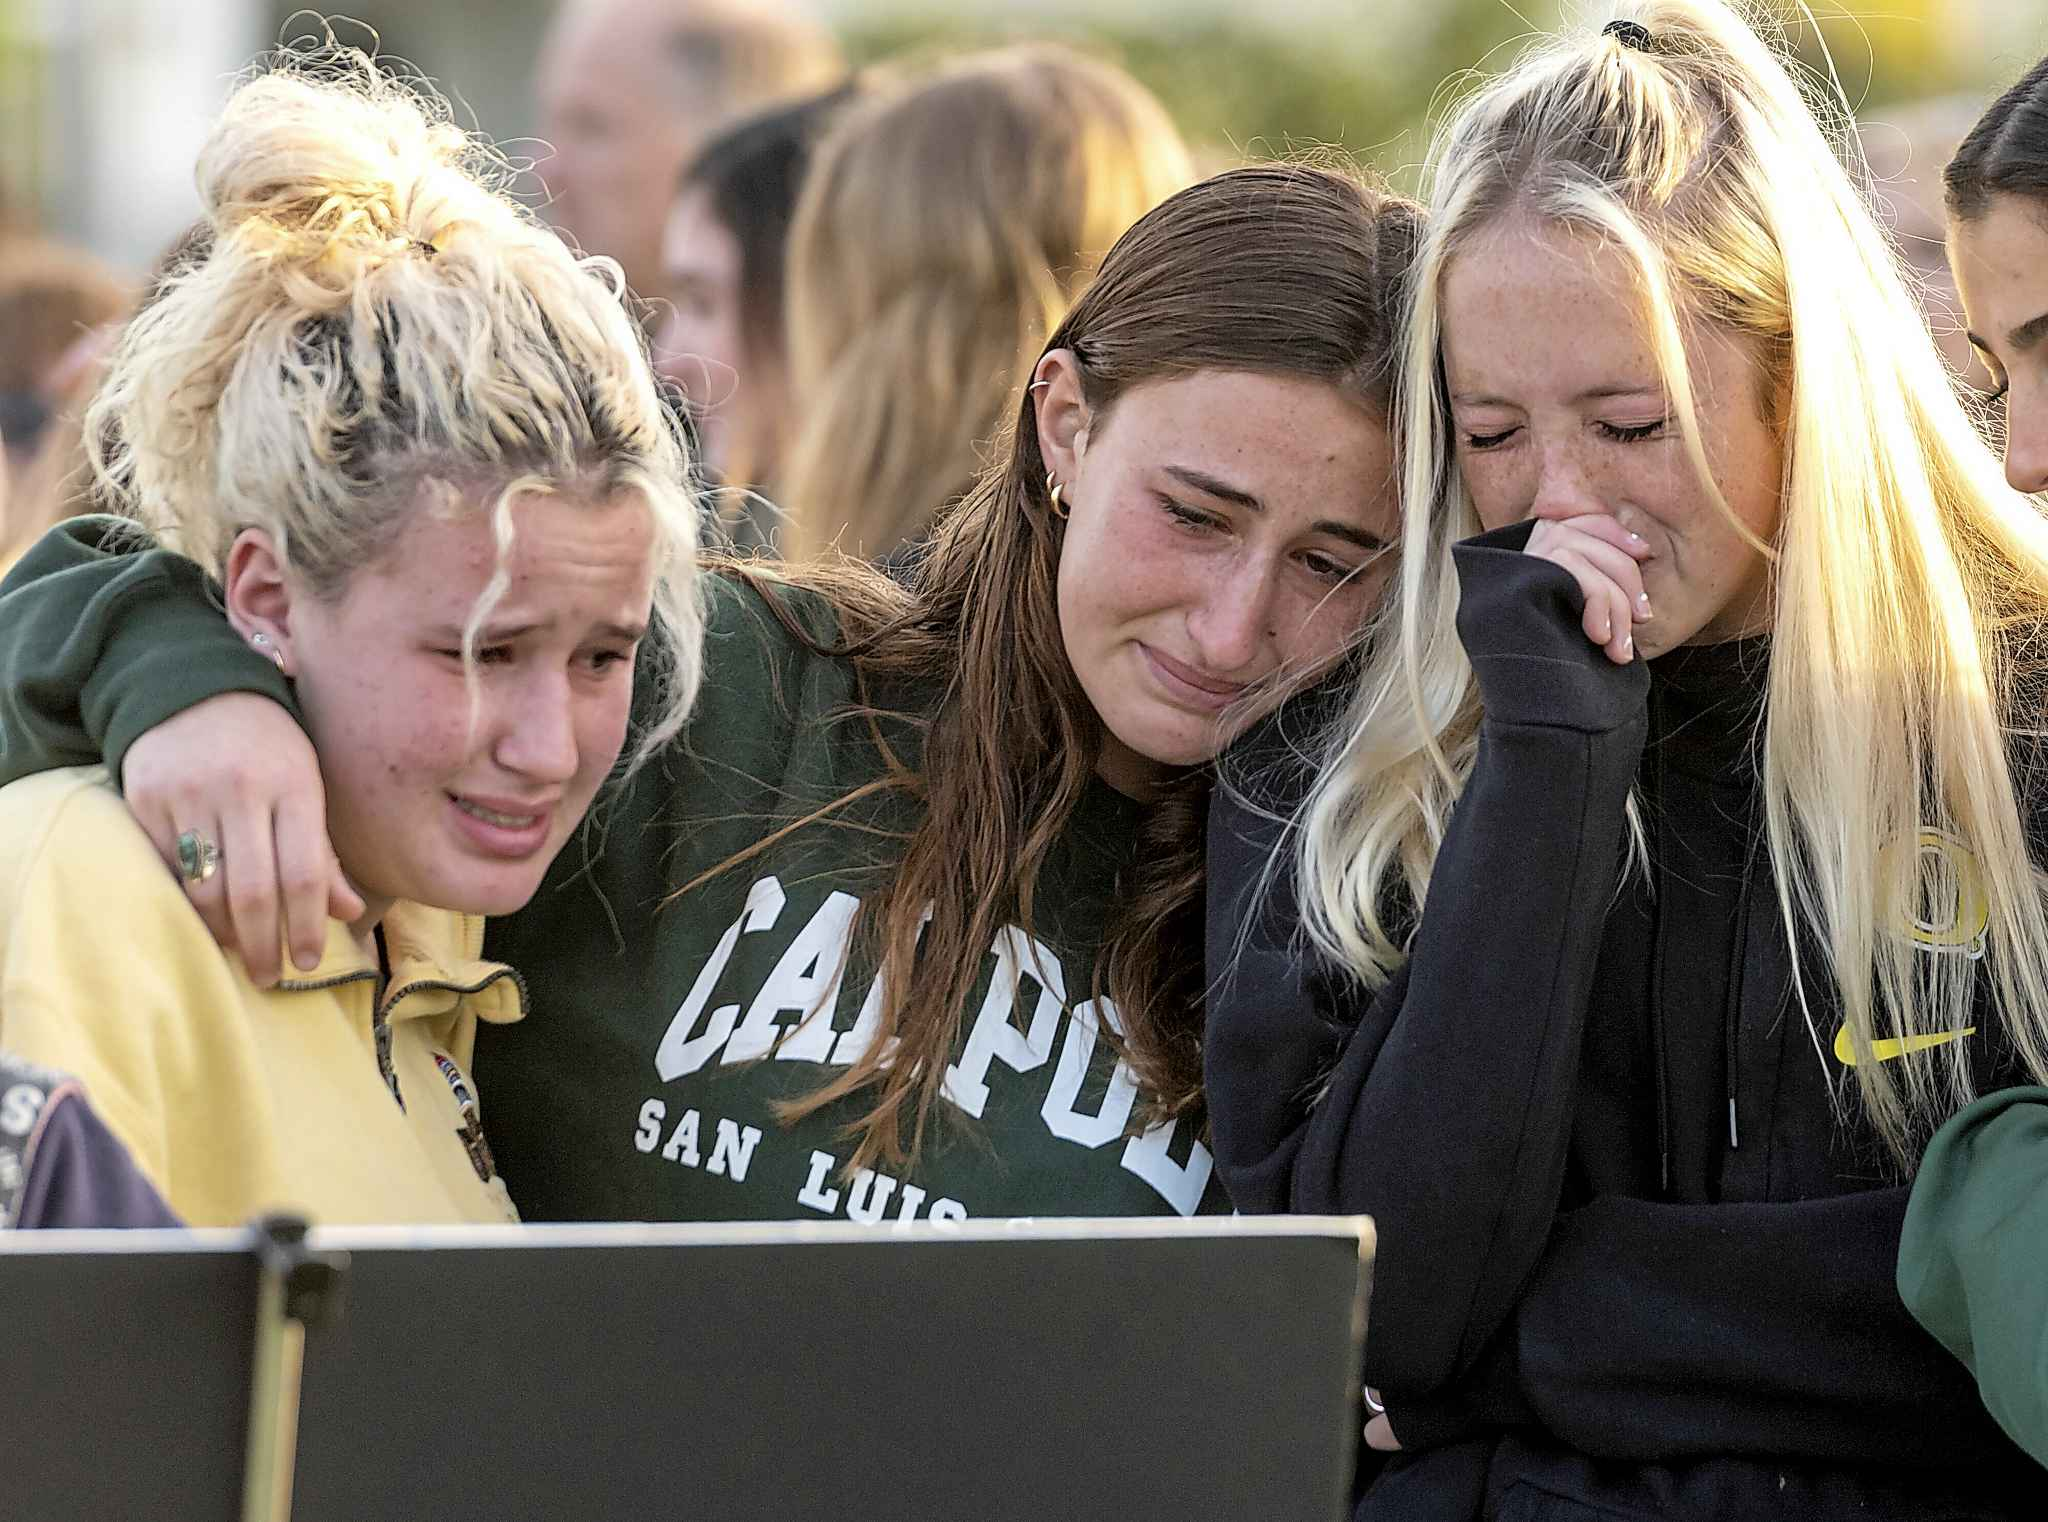 Friends and classmates of Alyssa Altobelli grieve as they look at photos of her during a vigil on Thursday. Alyssa and her parents, John and Keri Altobelli, were among the nine who died in the helicopter crash in Calabasas on Sunday. (Leonard Ortiz / The Orange County Register)